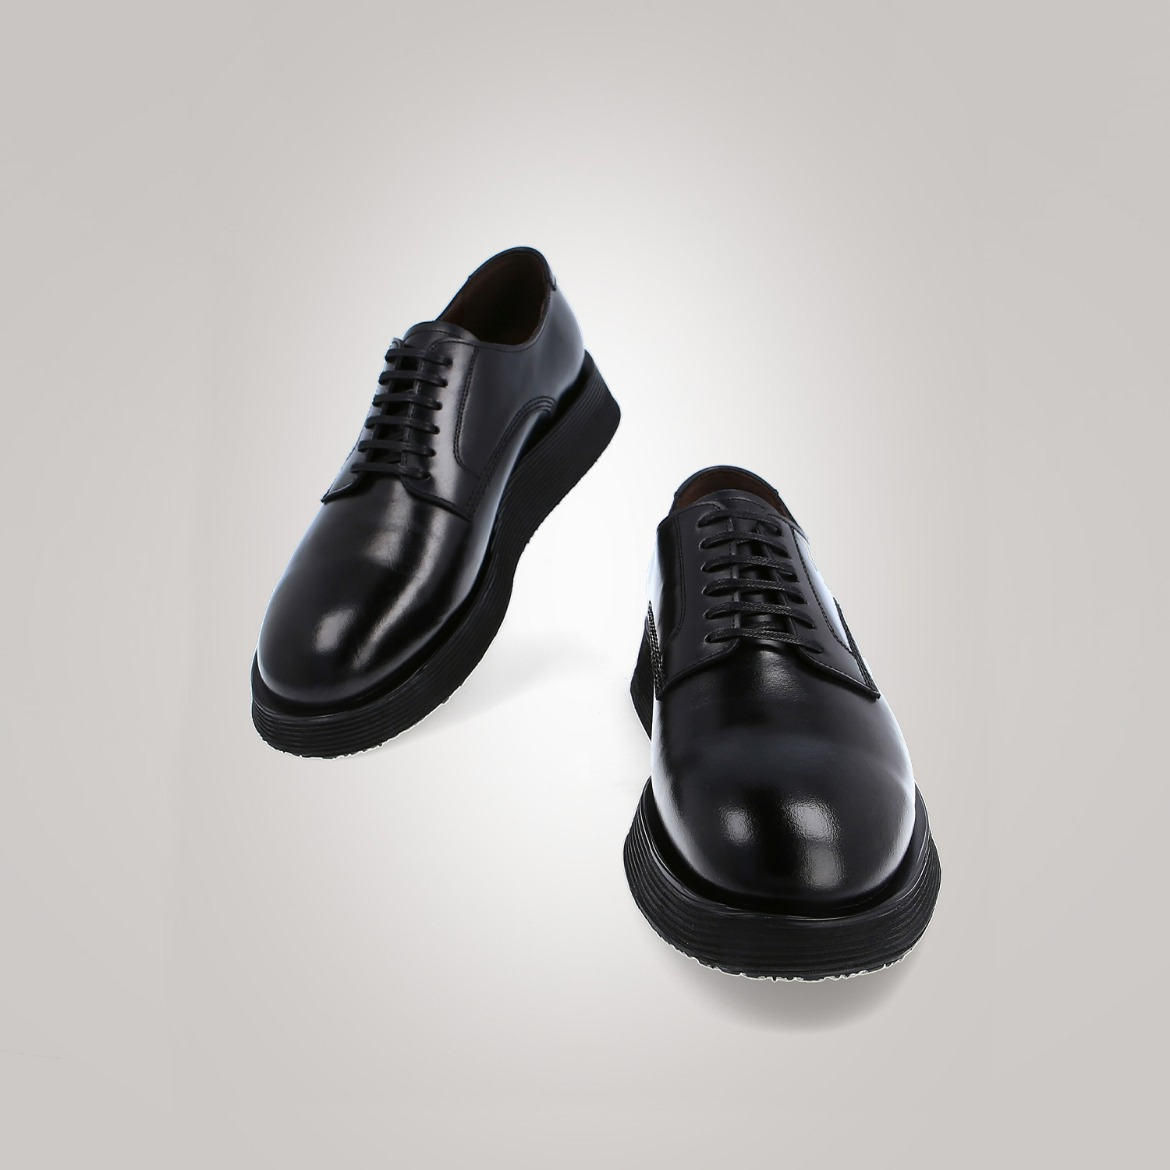 NOIR 3[Premium Plain toe Derby] (Black)